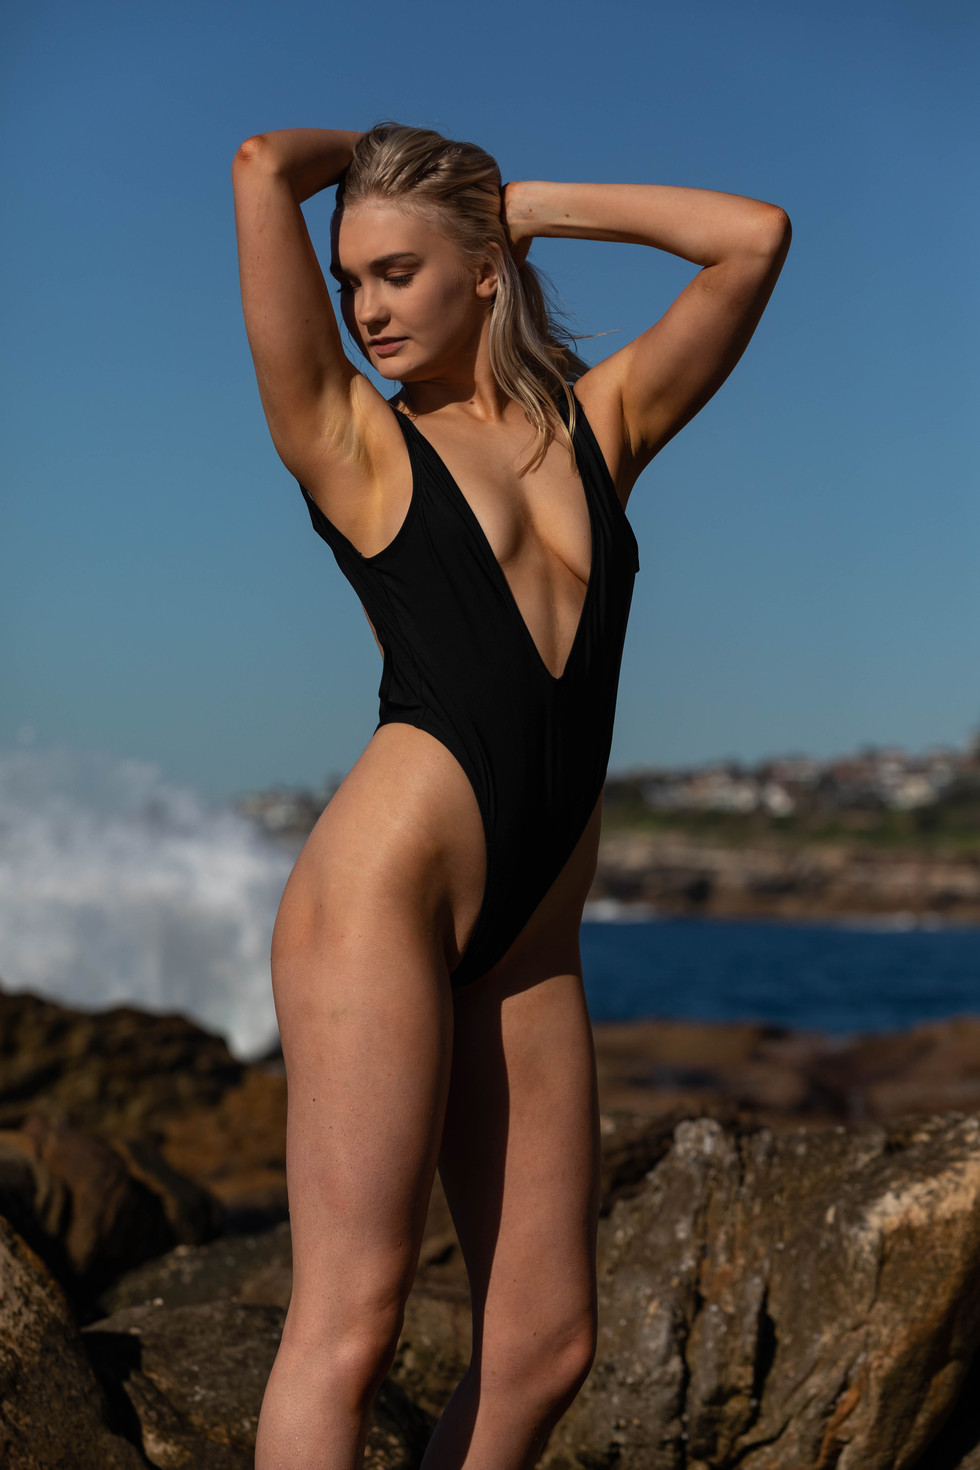 Sarah_by_CoogeePhotography-9066.jpg